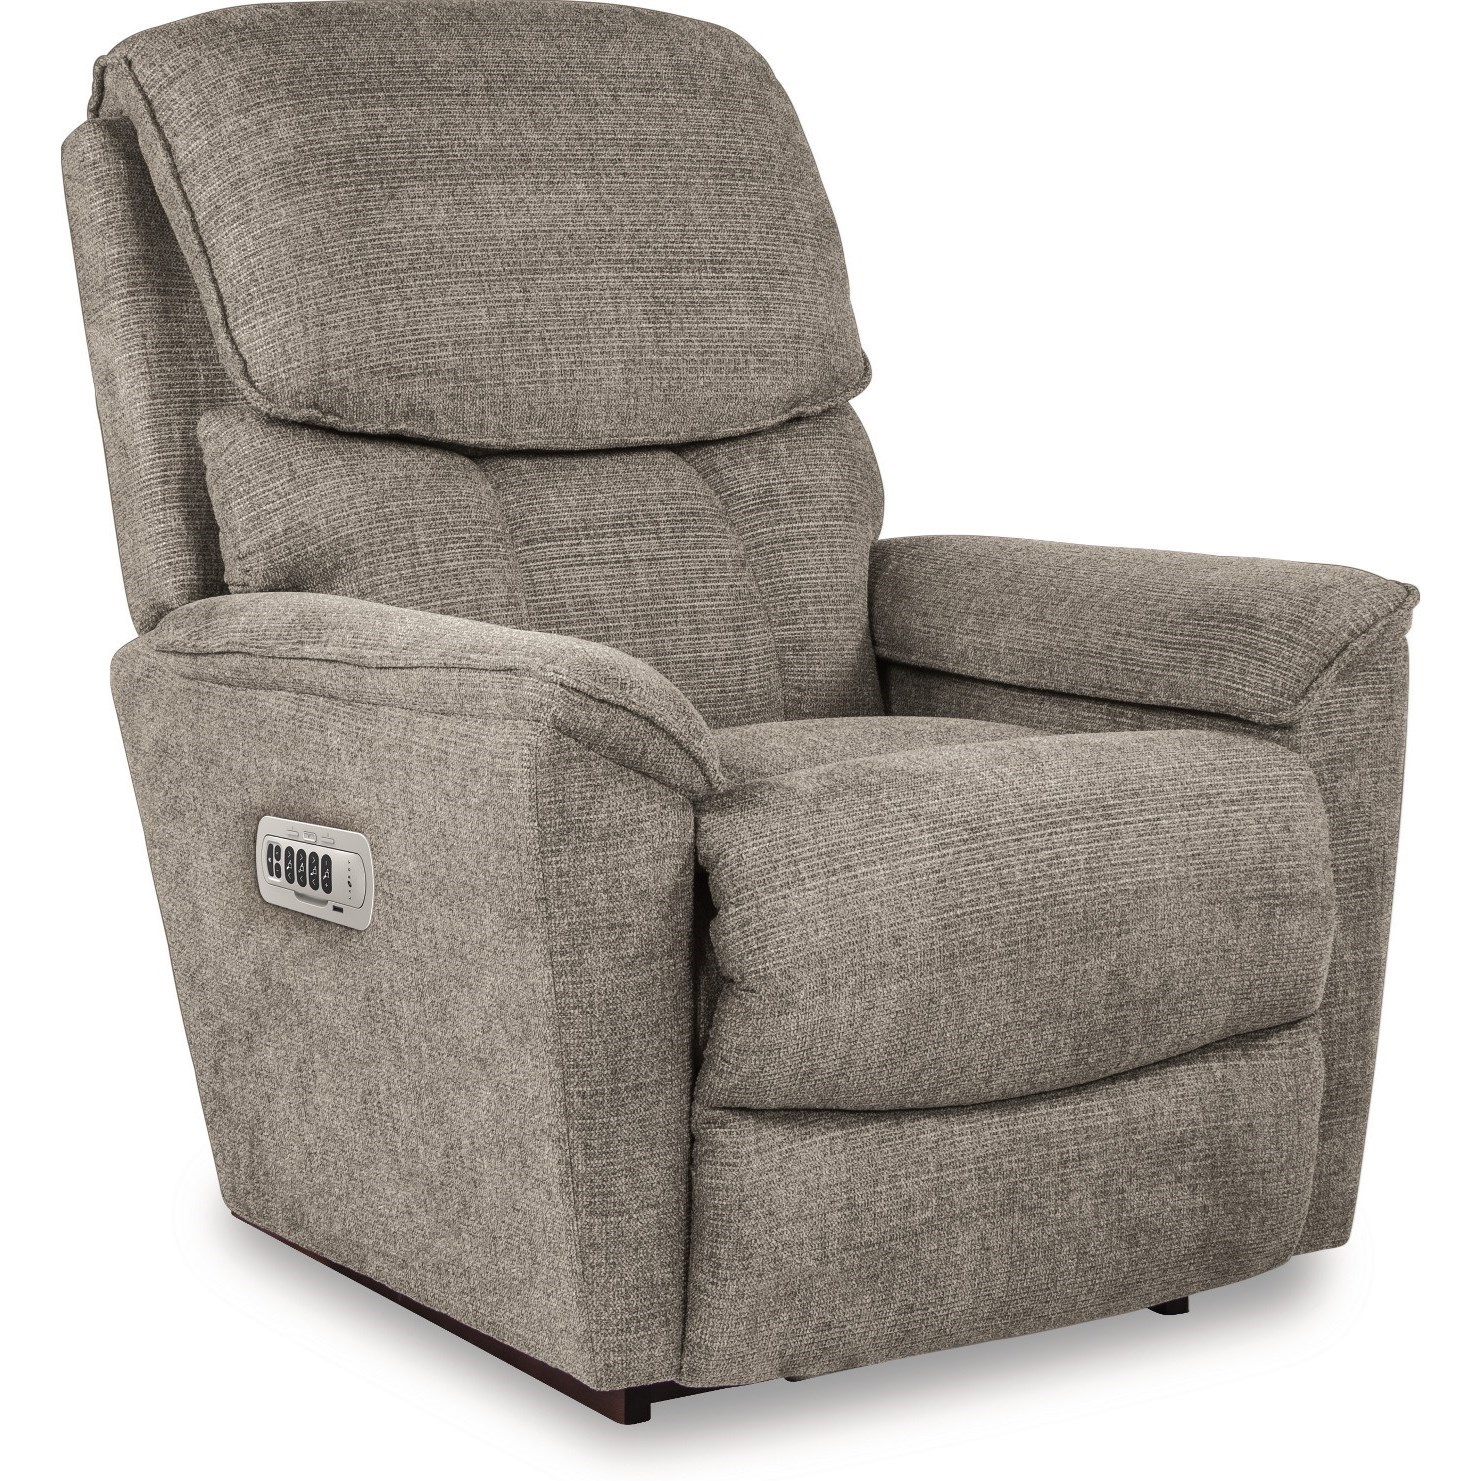 Kipling Power Wall Recliner w/ Headrest & Lumbar by La-Z-Boy at Houston's Yuma Furniture